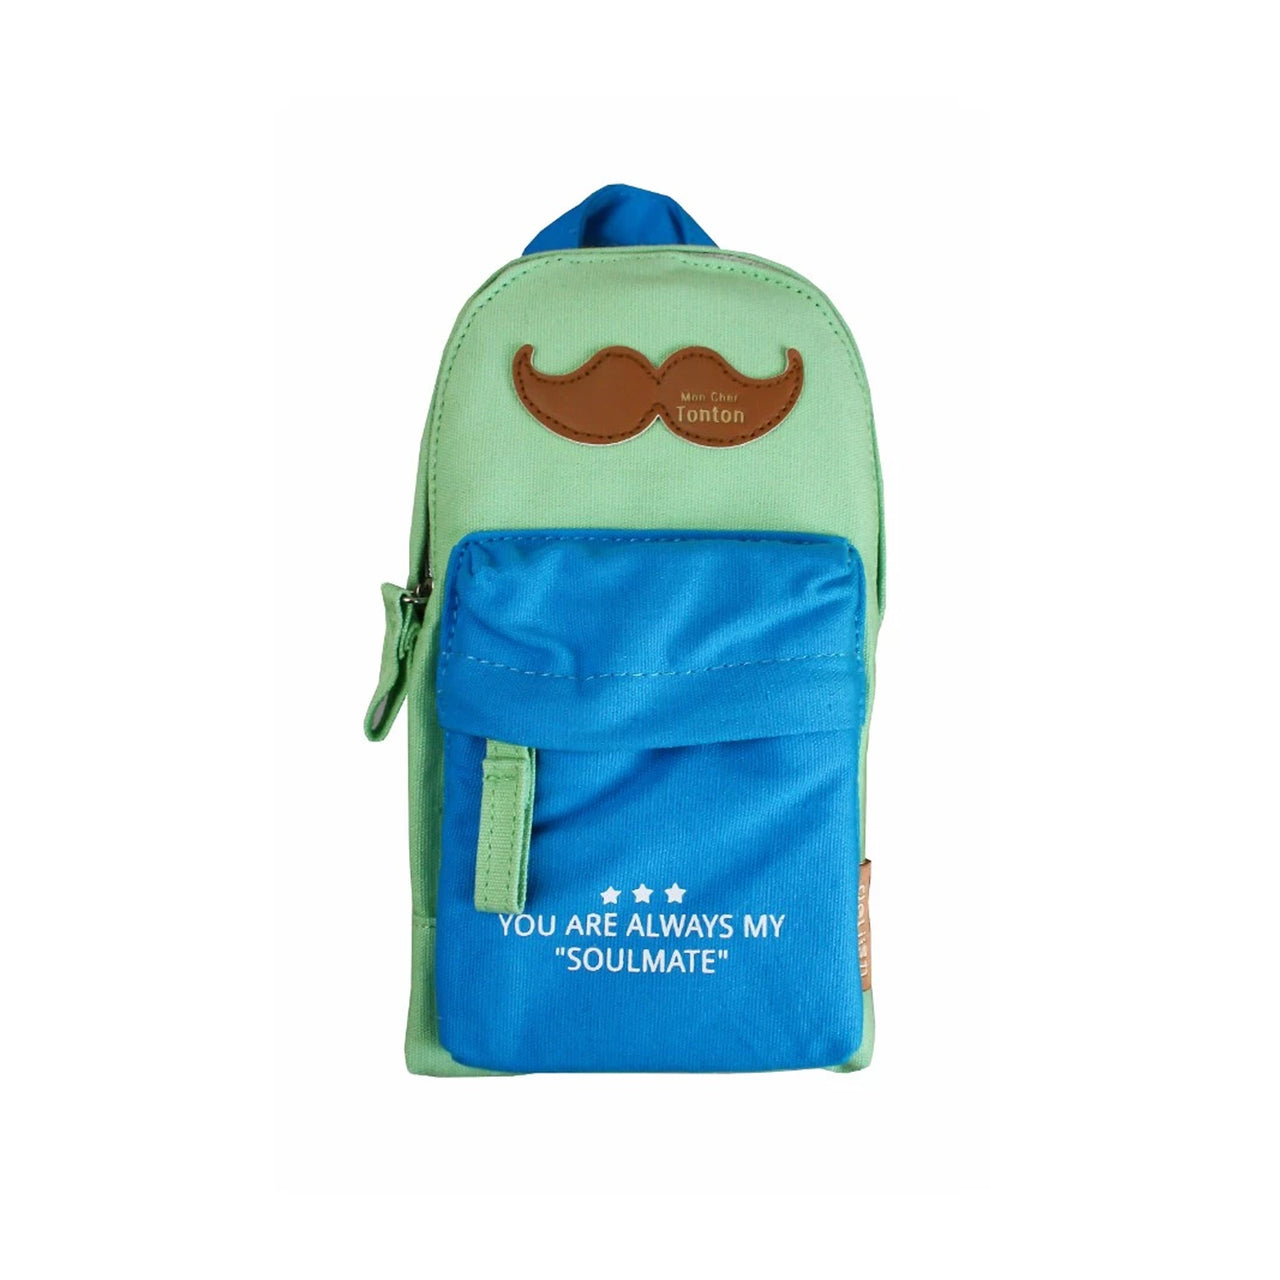 Backpack Pencil Case - Blue Green - EMARTBUY